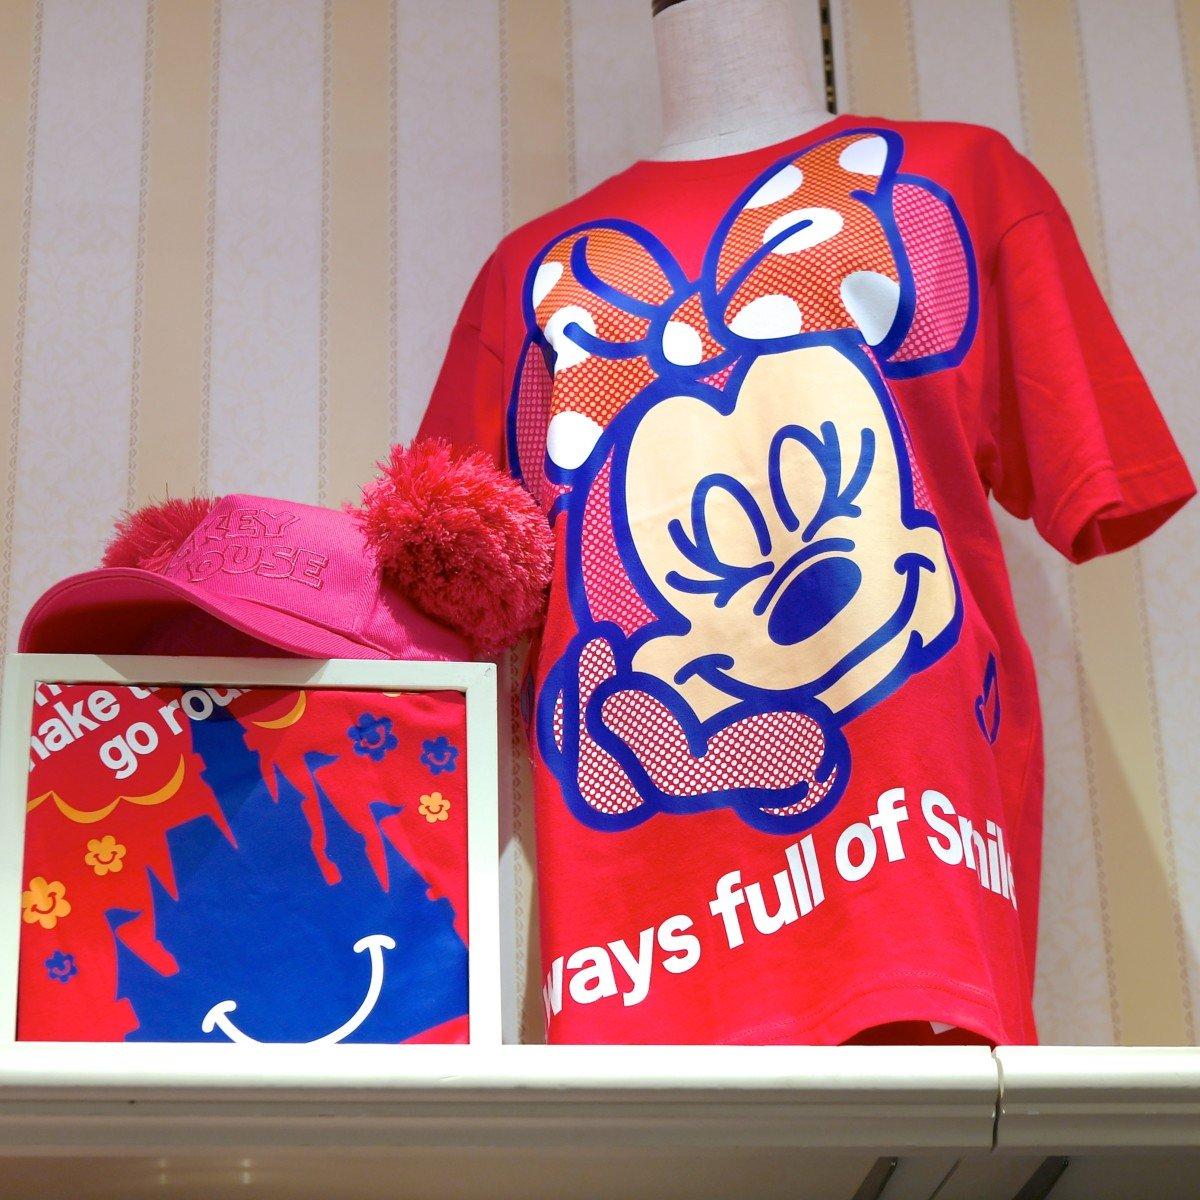 ミニー「Smiles all around!」Tシャツ